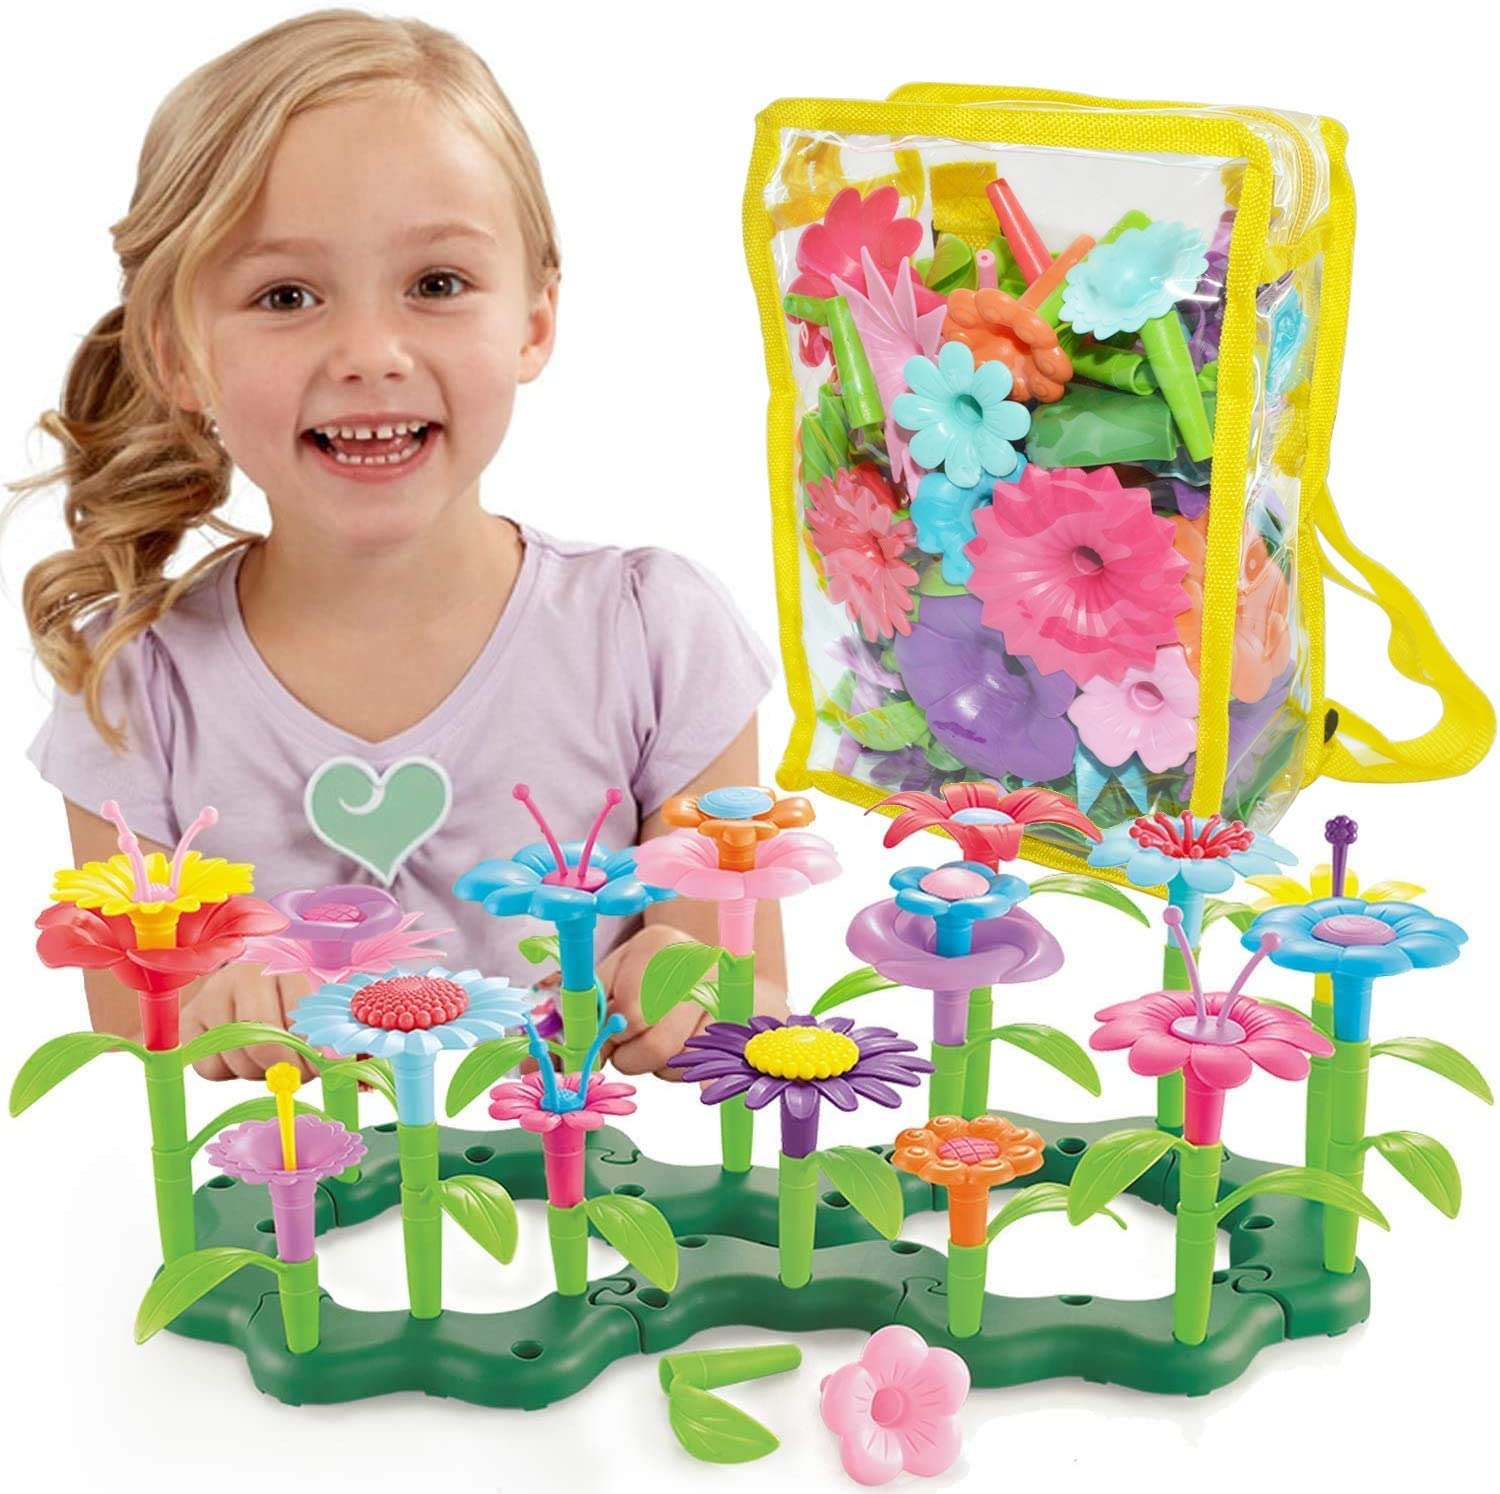 POMIKU Latest Flower Garden Building Toys, Gardening Pretend Play for Kids, Funny Educational Gifts for 3, 4, 5, 6 Year Old Girls and Boys (109 PCS)